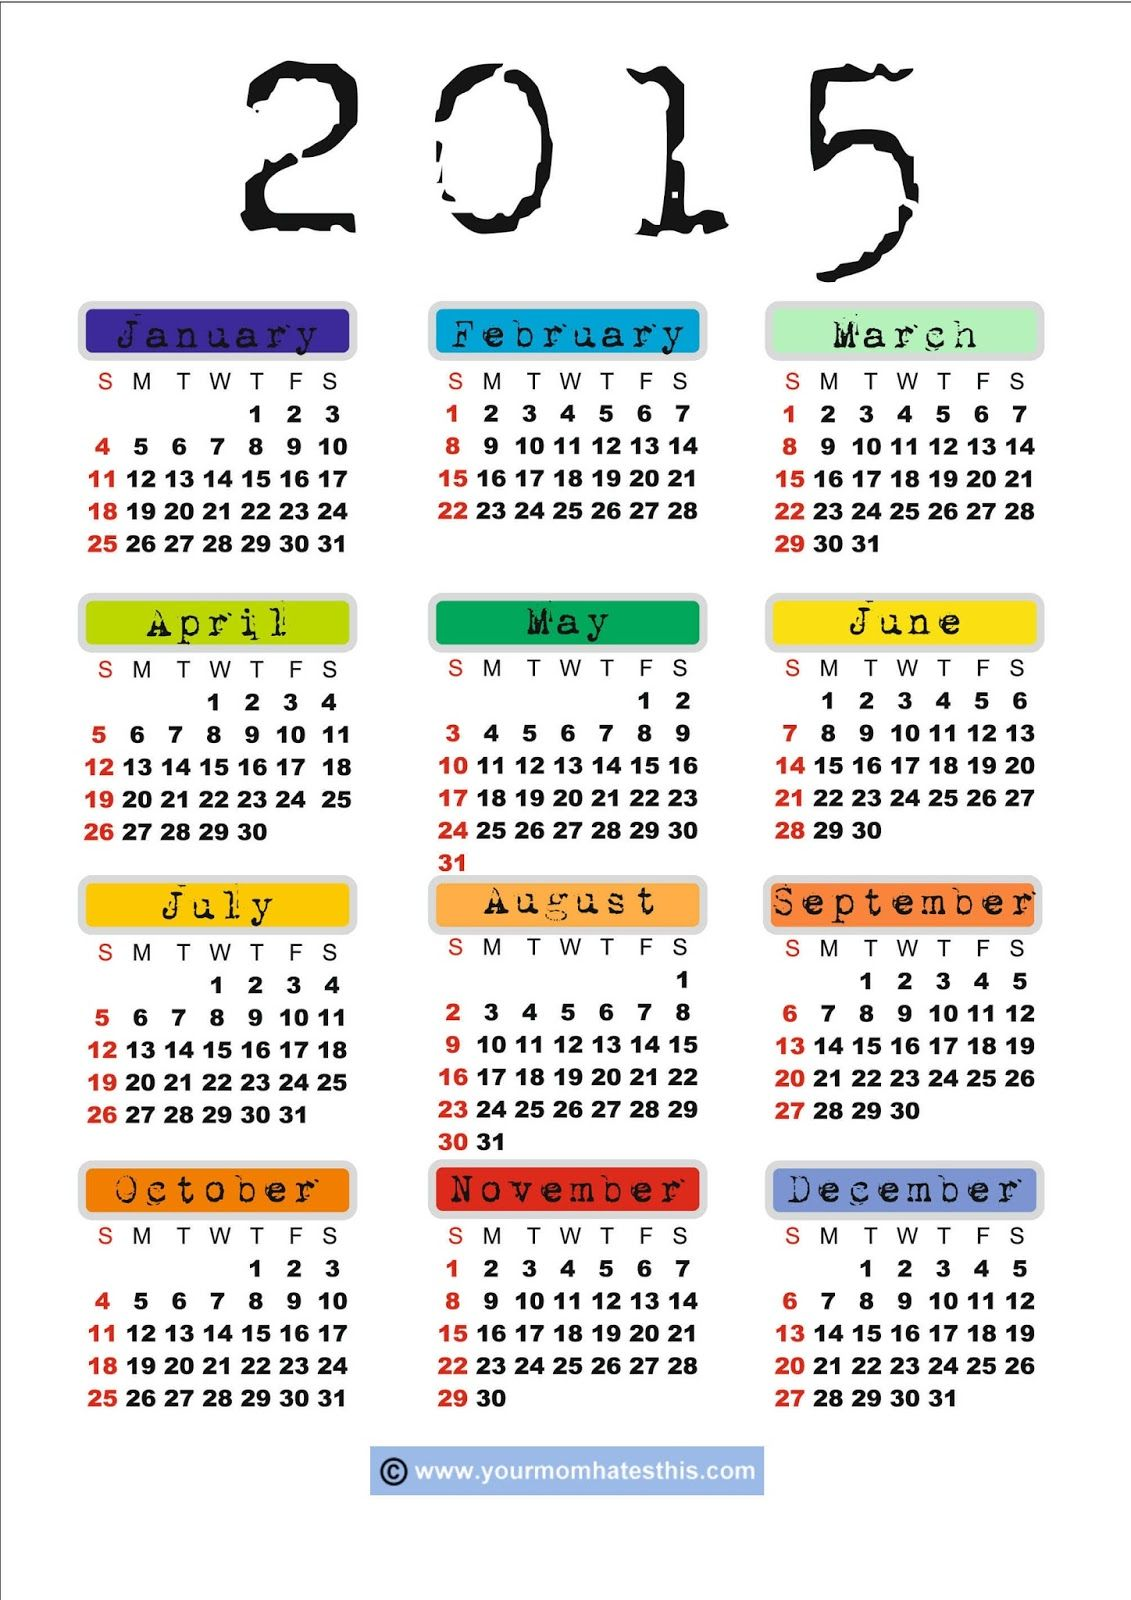 2015 US Calendar Images Free Download - New Year US Calendar 2015 ...